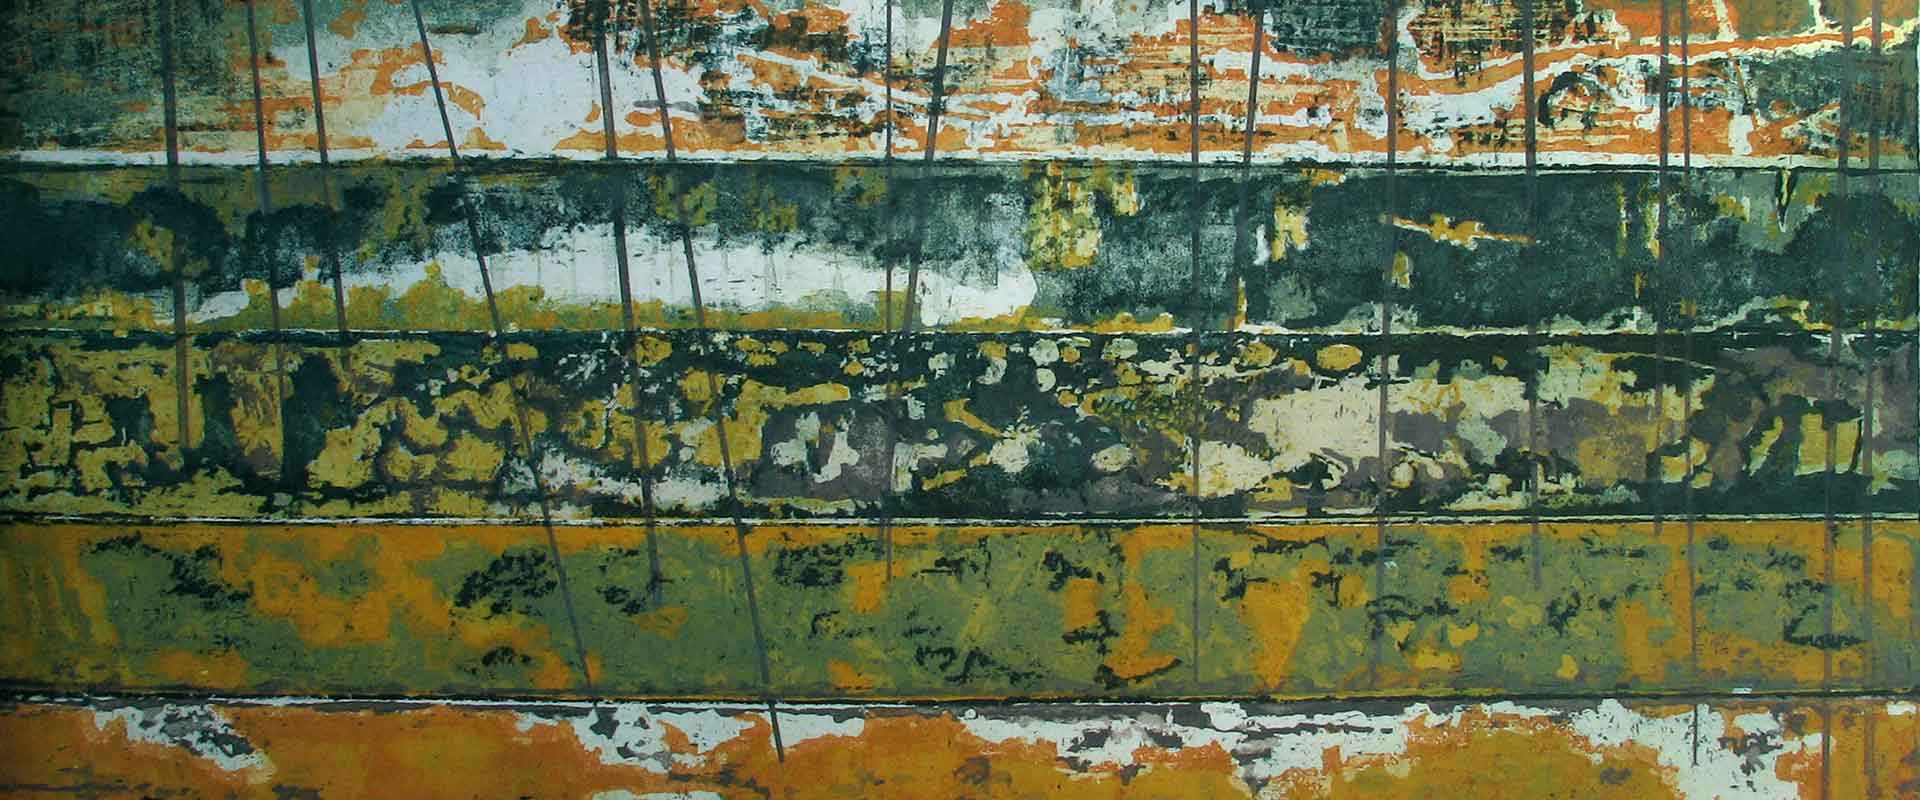 Aeon close up detail of etching Stephen Vaughan